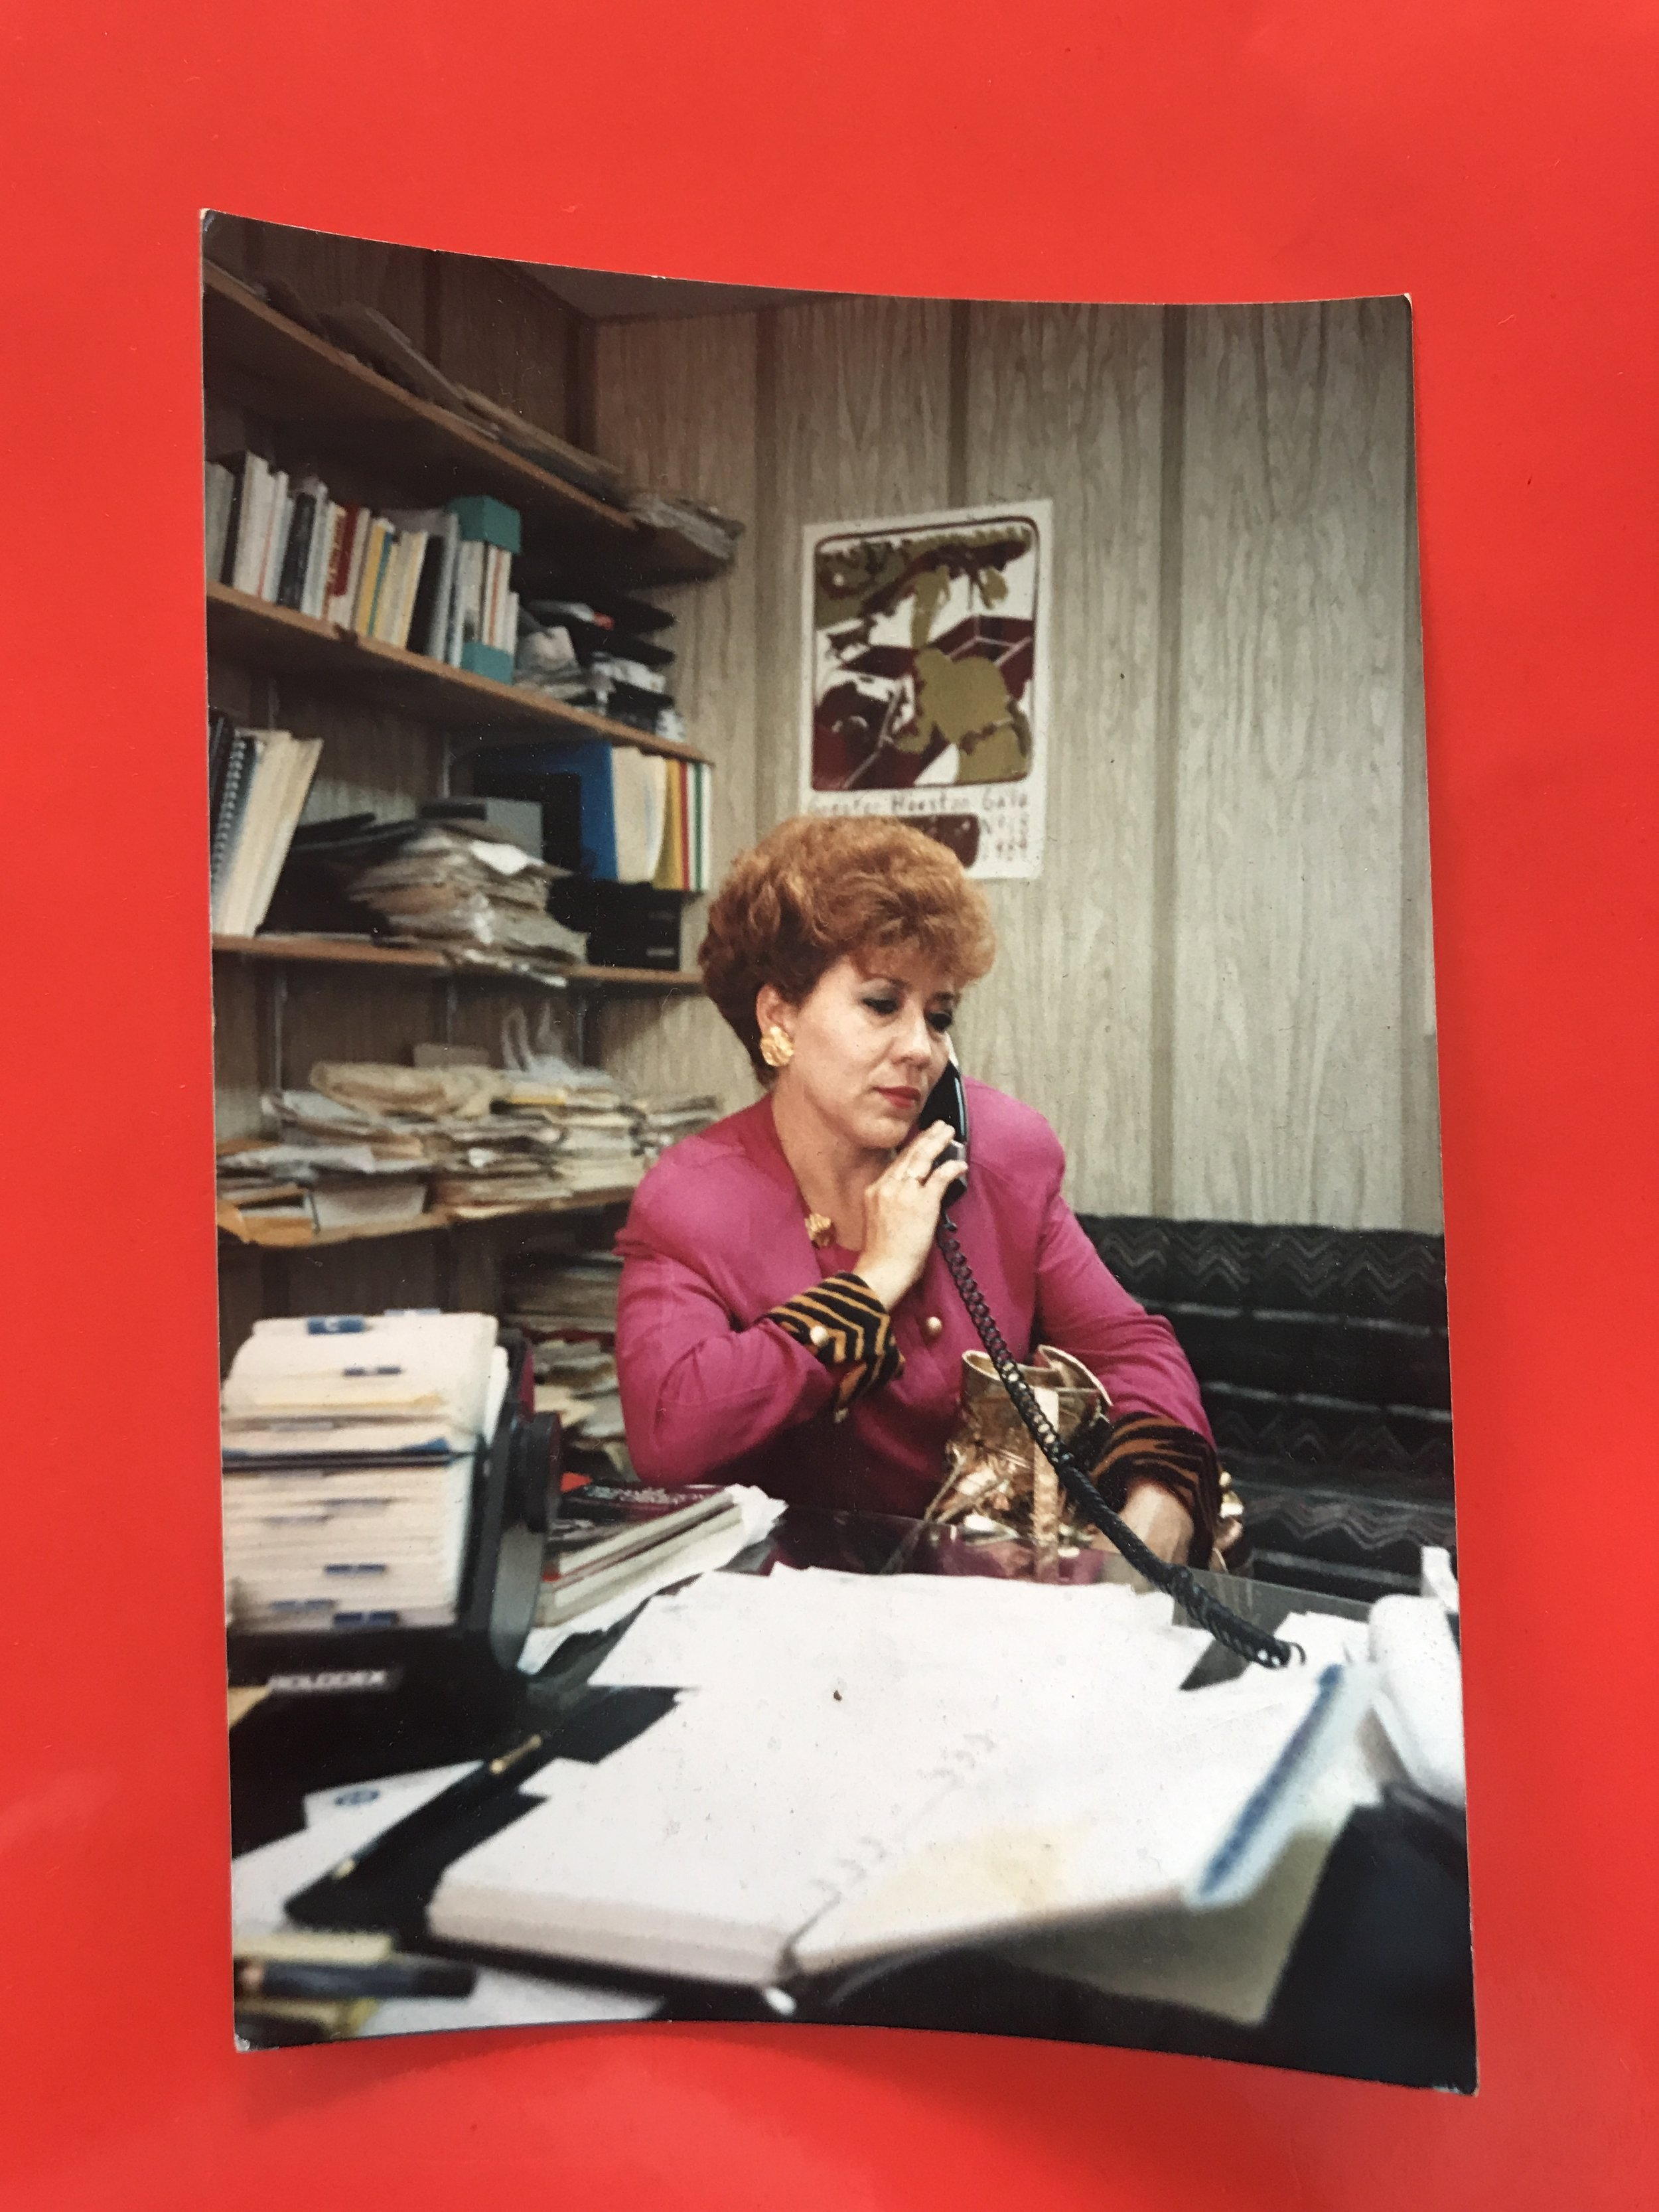 A photo saved by Victor Alfaro-Clark, Centro Binacional de Derechos Humanos director. The woman pictured helped Alfaro-Clark organize Vanguardia de Mujeres Libres Maria Magdalena among other civil and human right projects in the 80's.